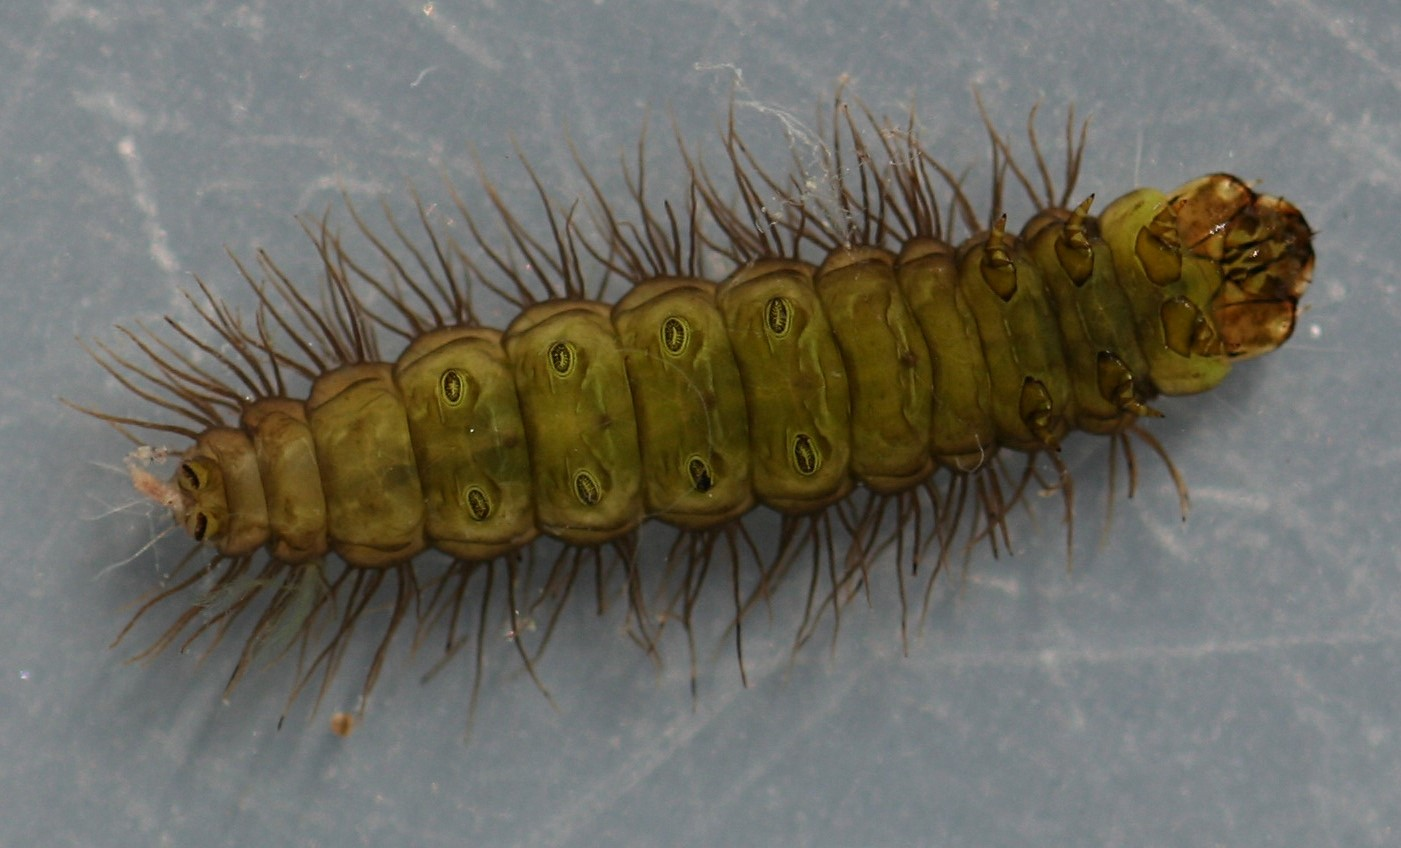 Larva 10 mm. In alcohol. Ventral view.